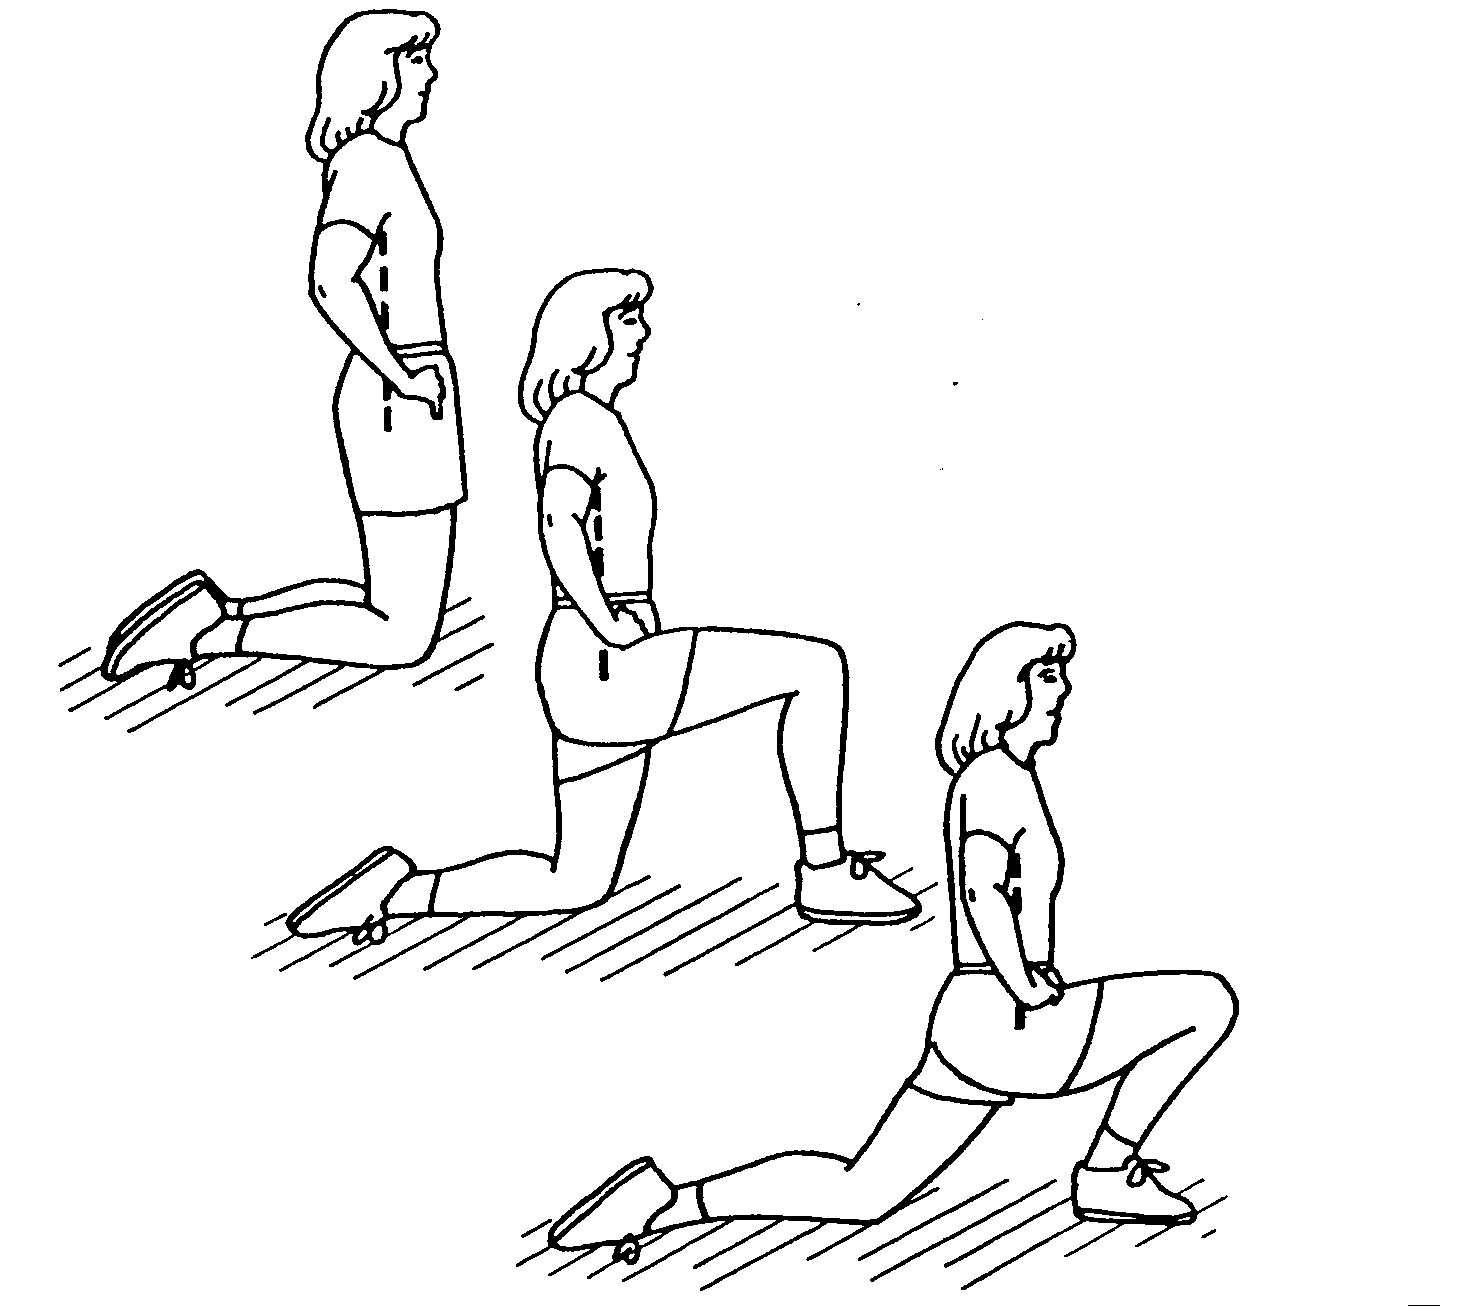 Lower Back Exercise The Utic